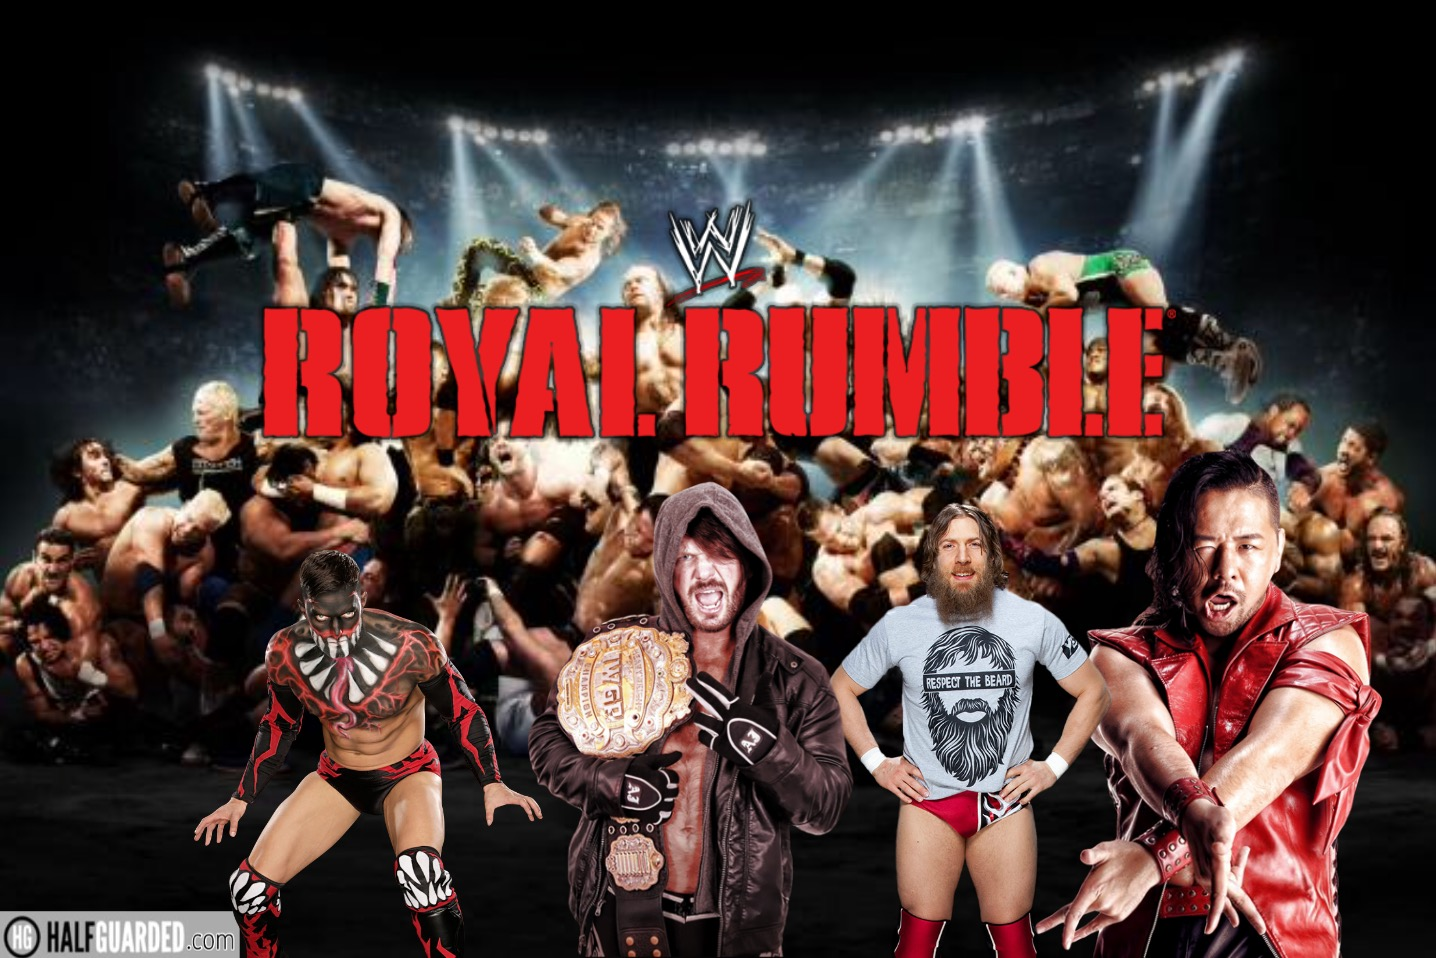 WWE Greatest Royal Rumble: Live stream, start time, match card and more